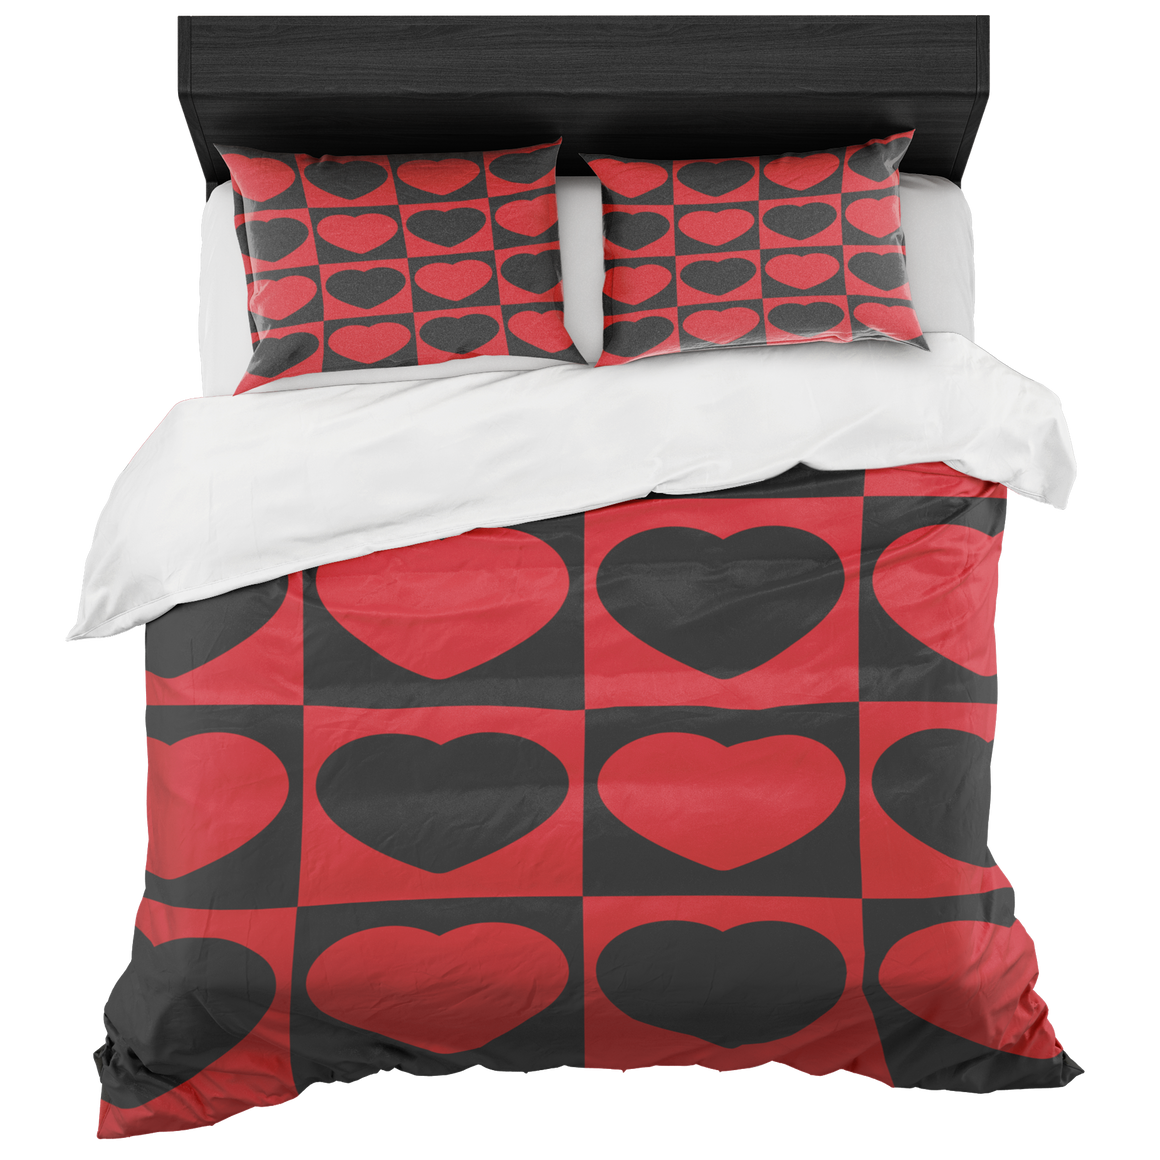 Chic Heart to Heart Duvet Cover Set King and Queen Duvet 2018